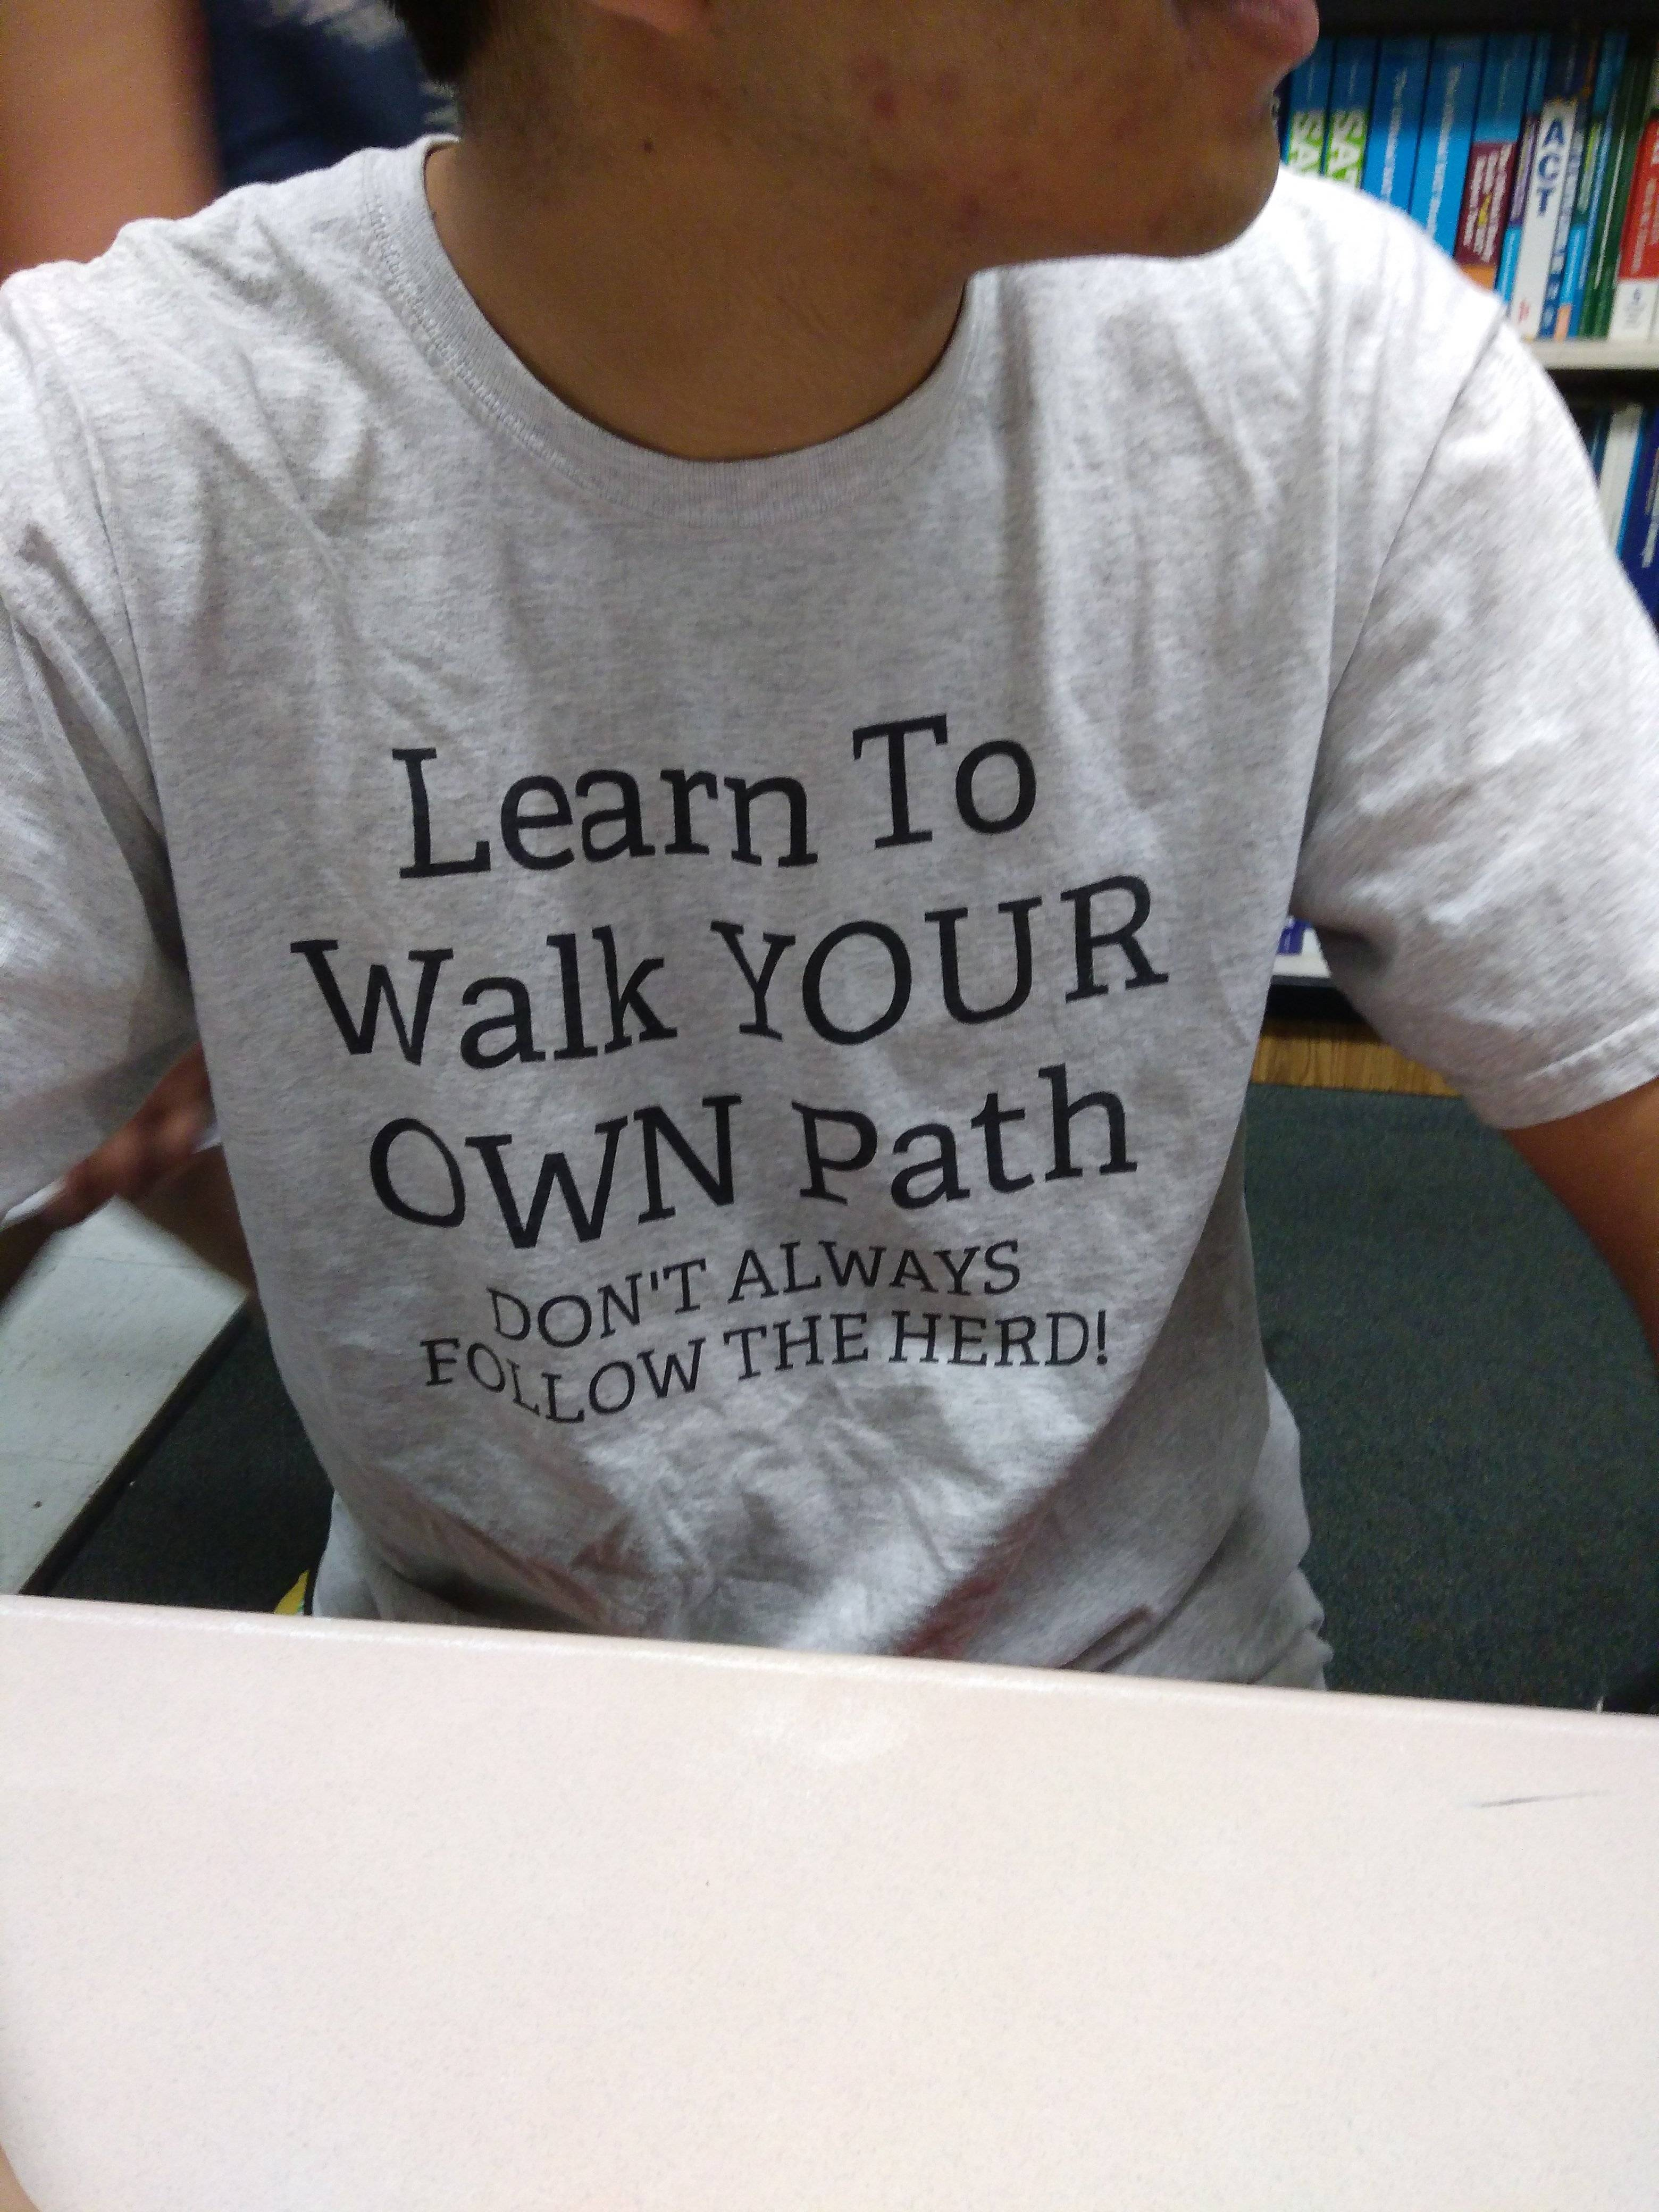 [Image] My friend wore this motivational shirt today :)